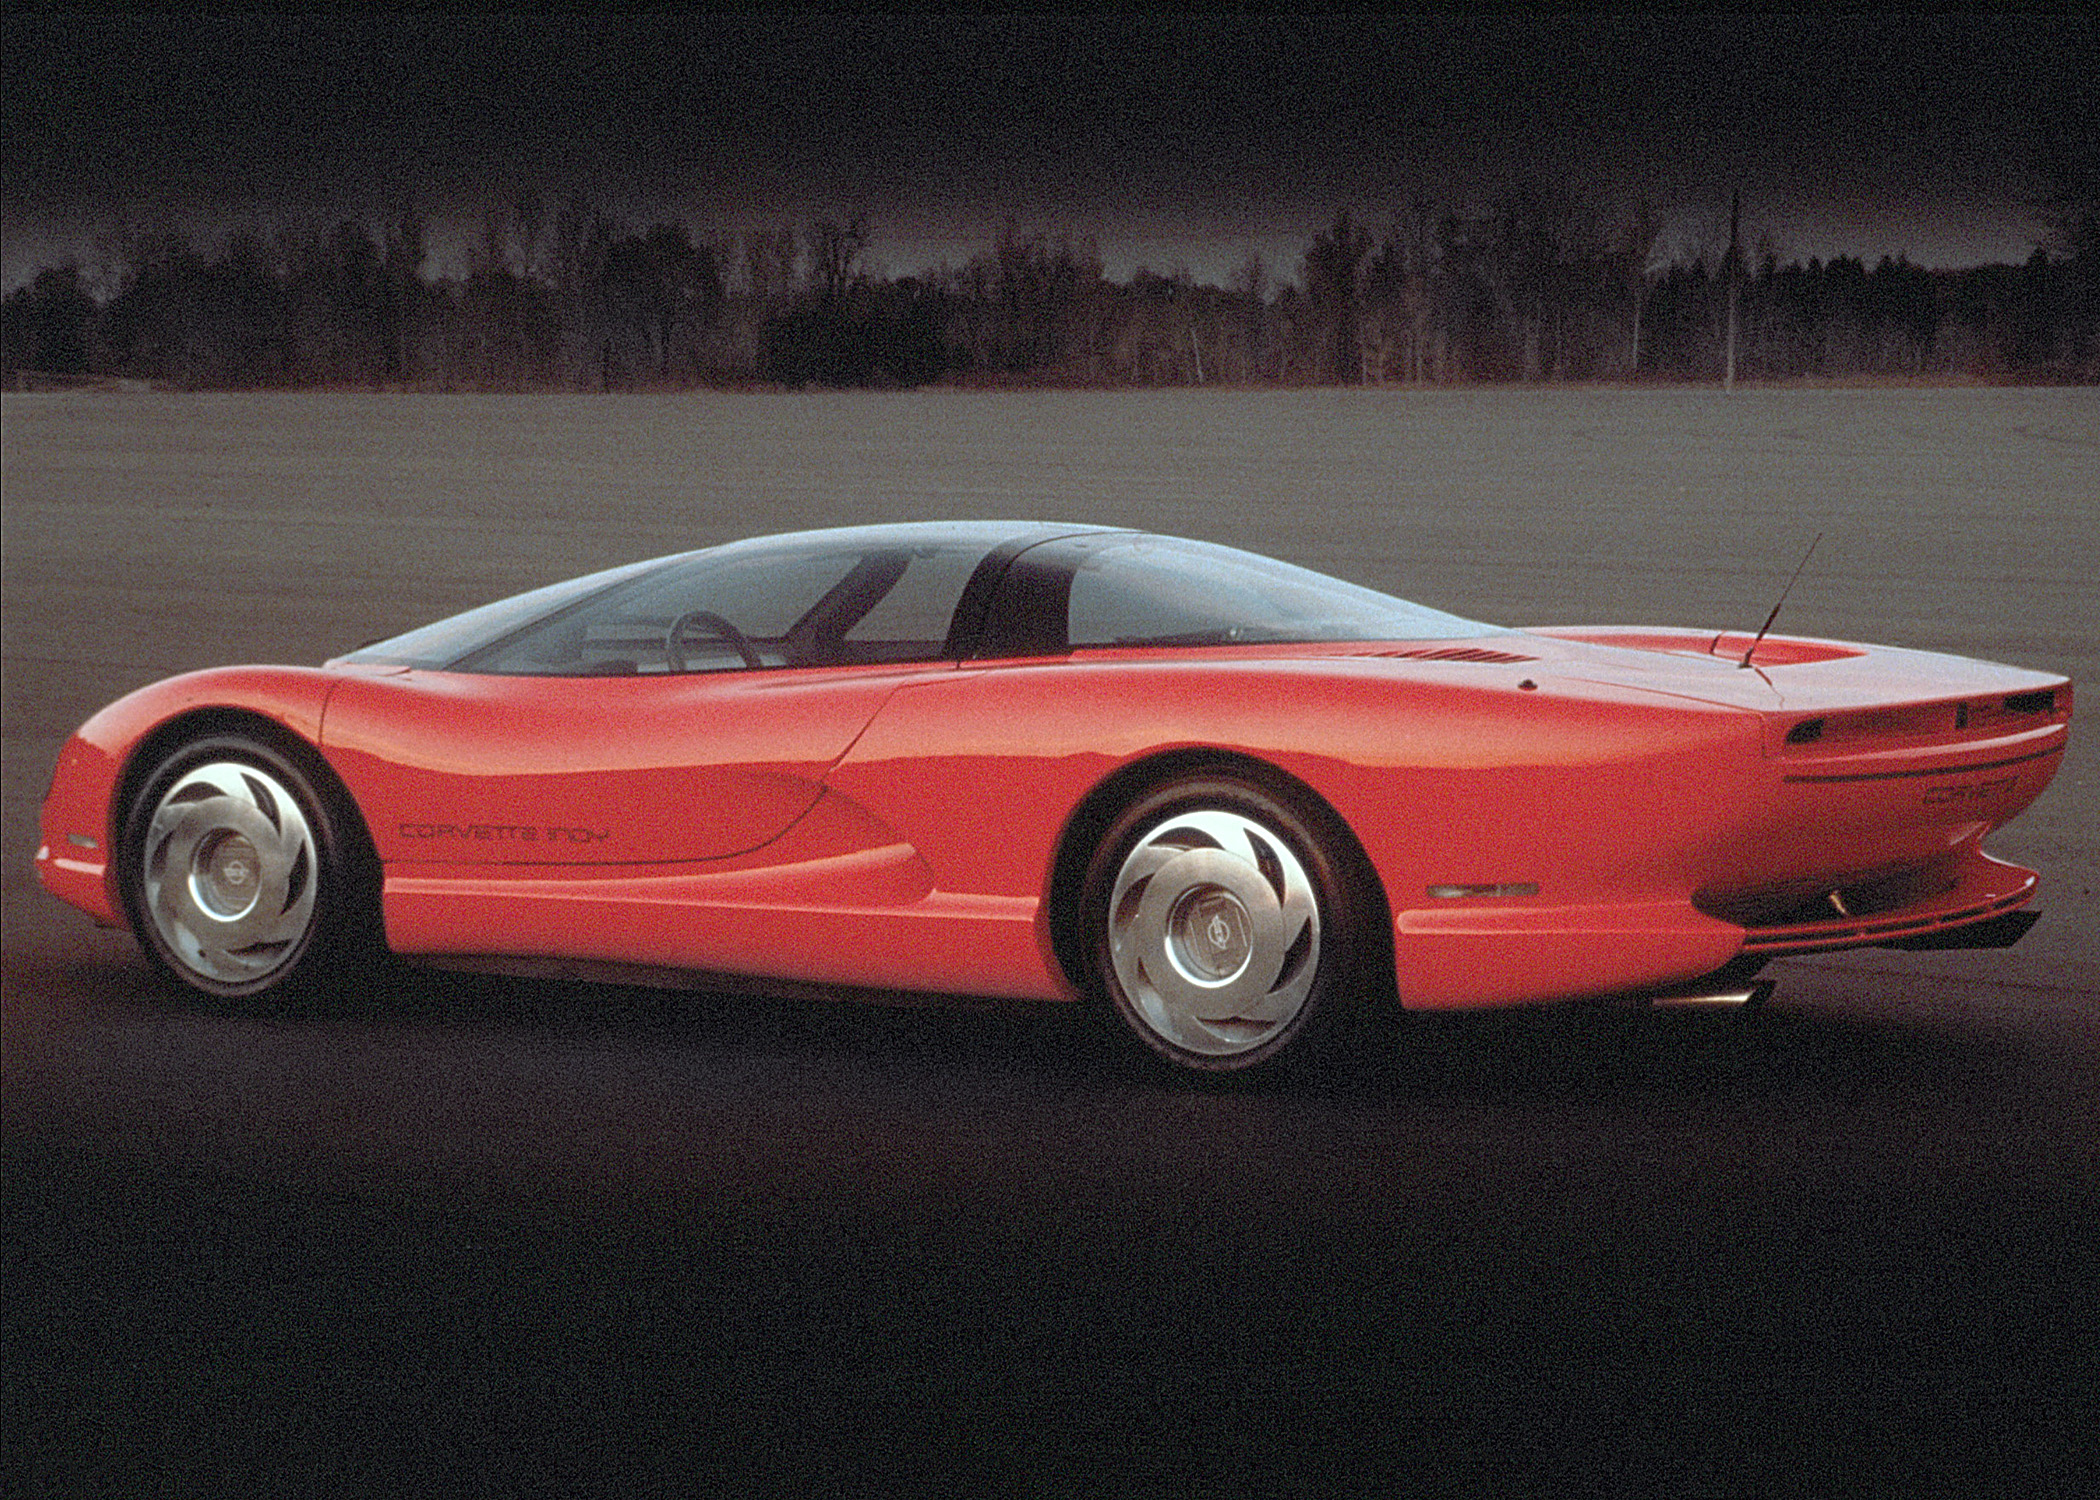 1986-Concept-Car-Chevrolet-Corvette-Indy-74741